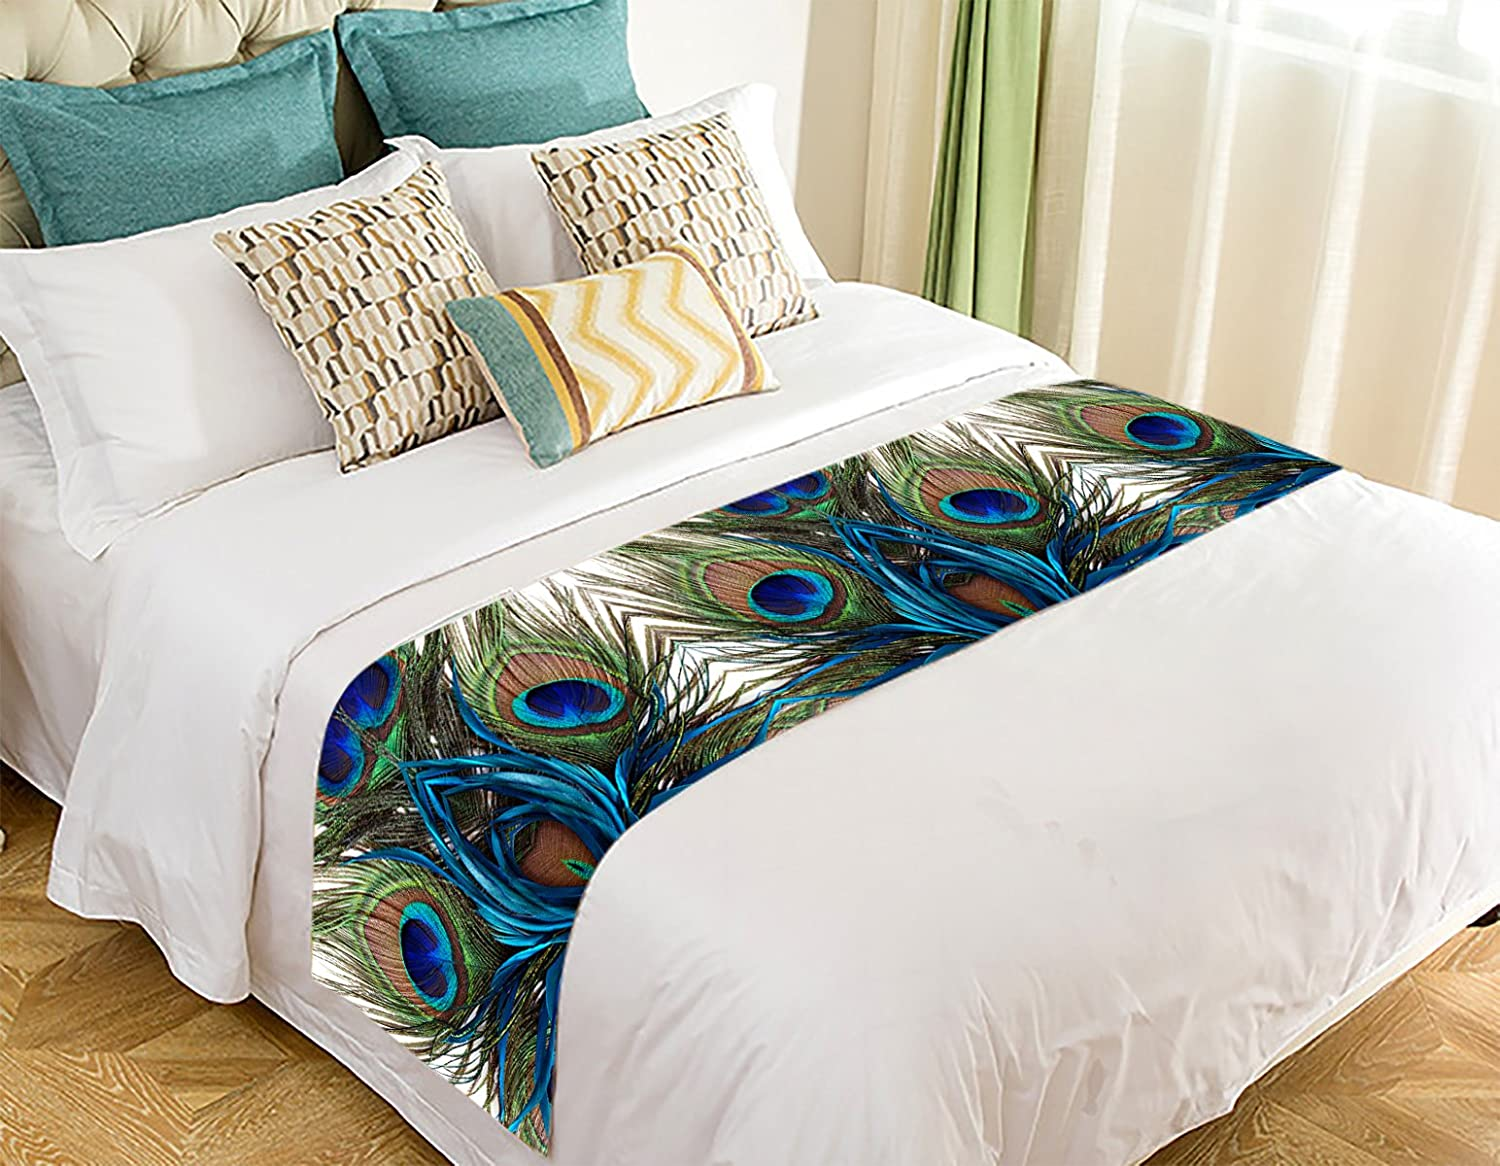 Custom Peacock Bed Runner,Peacock Bed Runner Bedding Scarf Bed Decoration 20x95 inch 77BedRunner